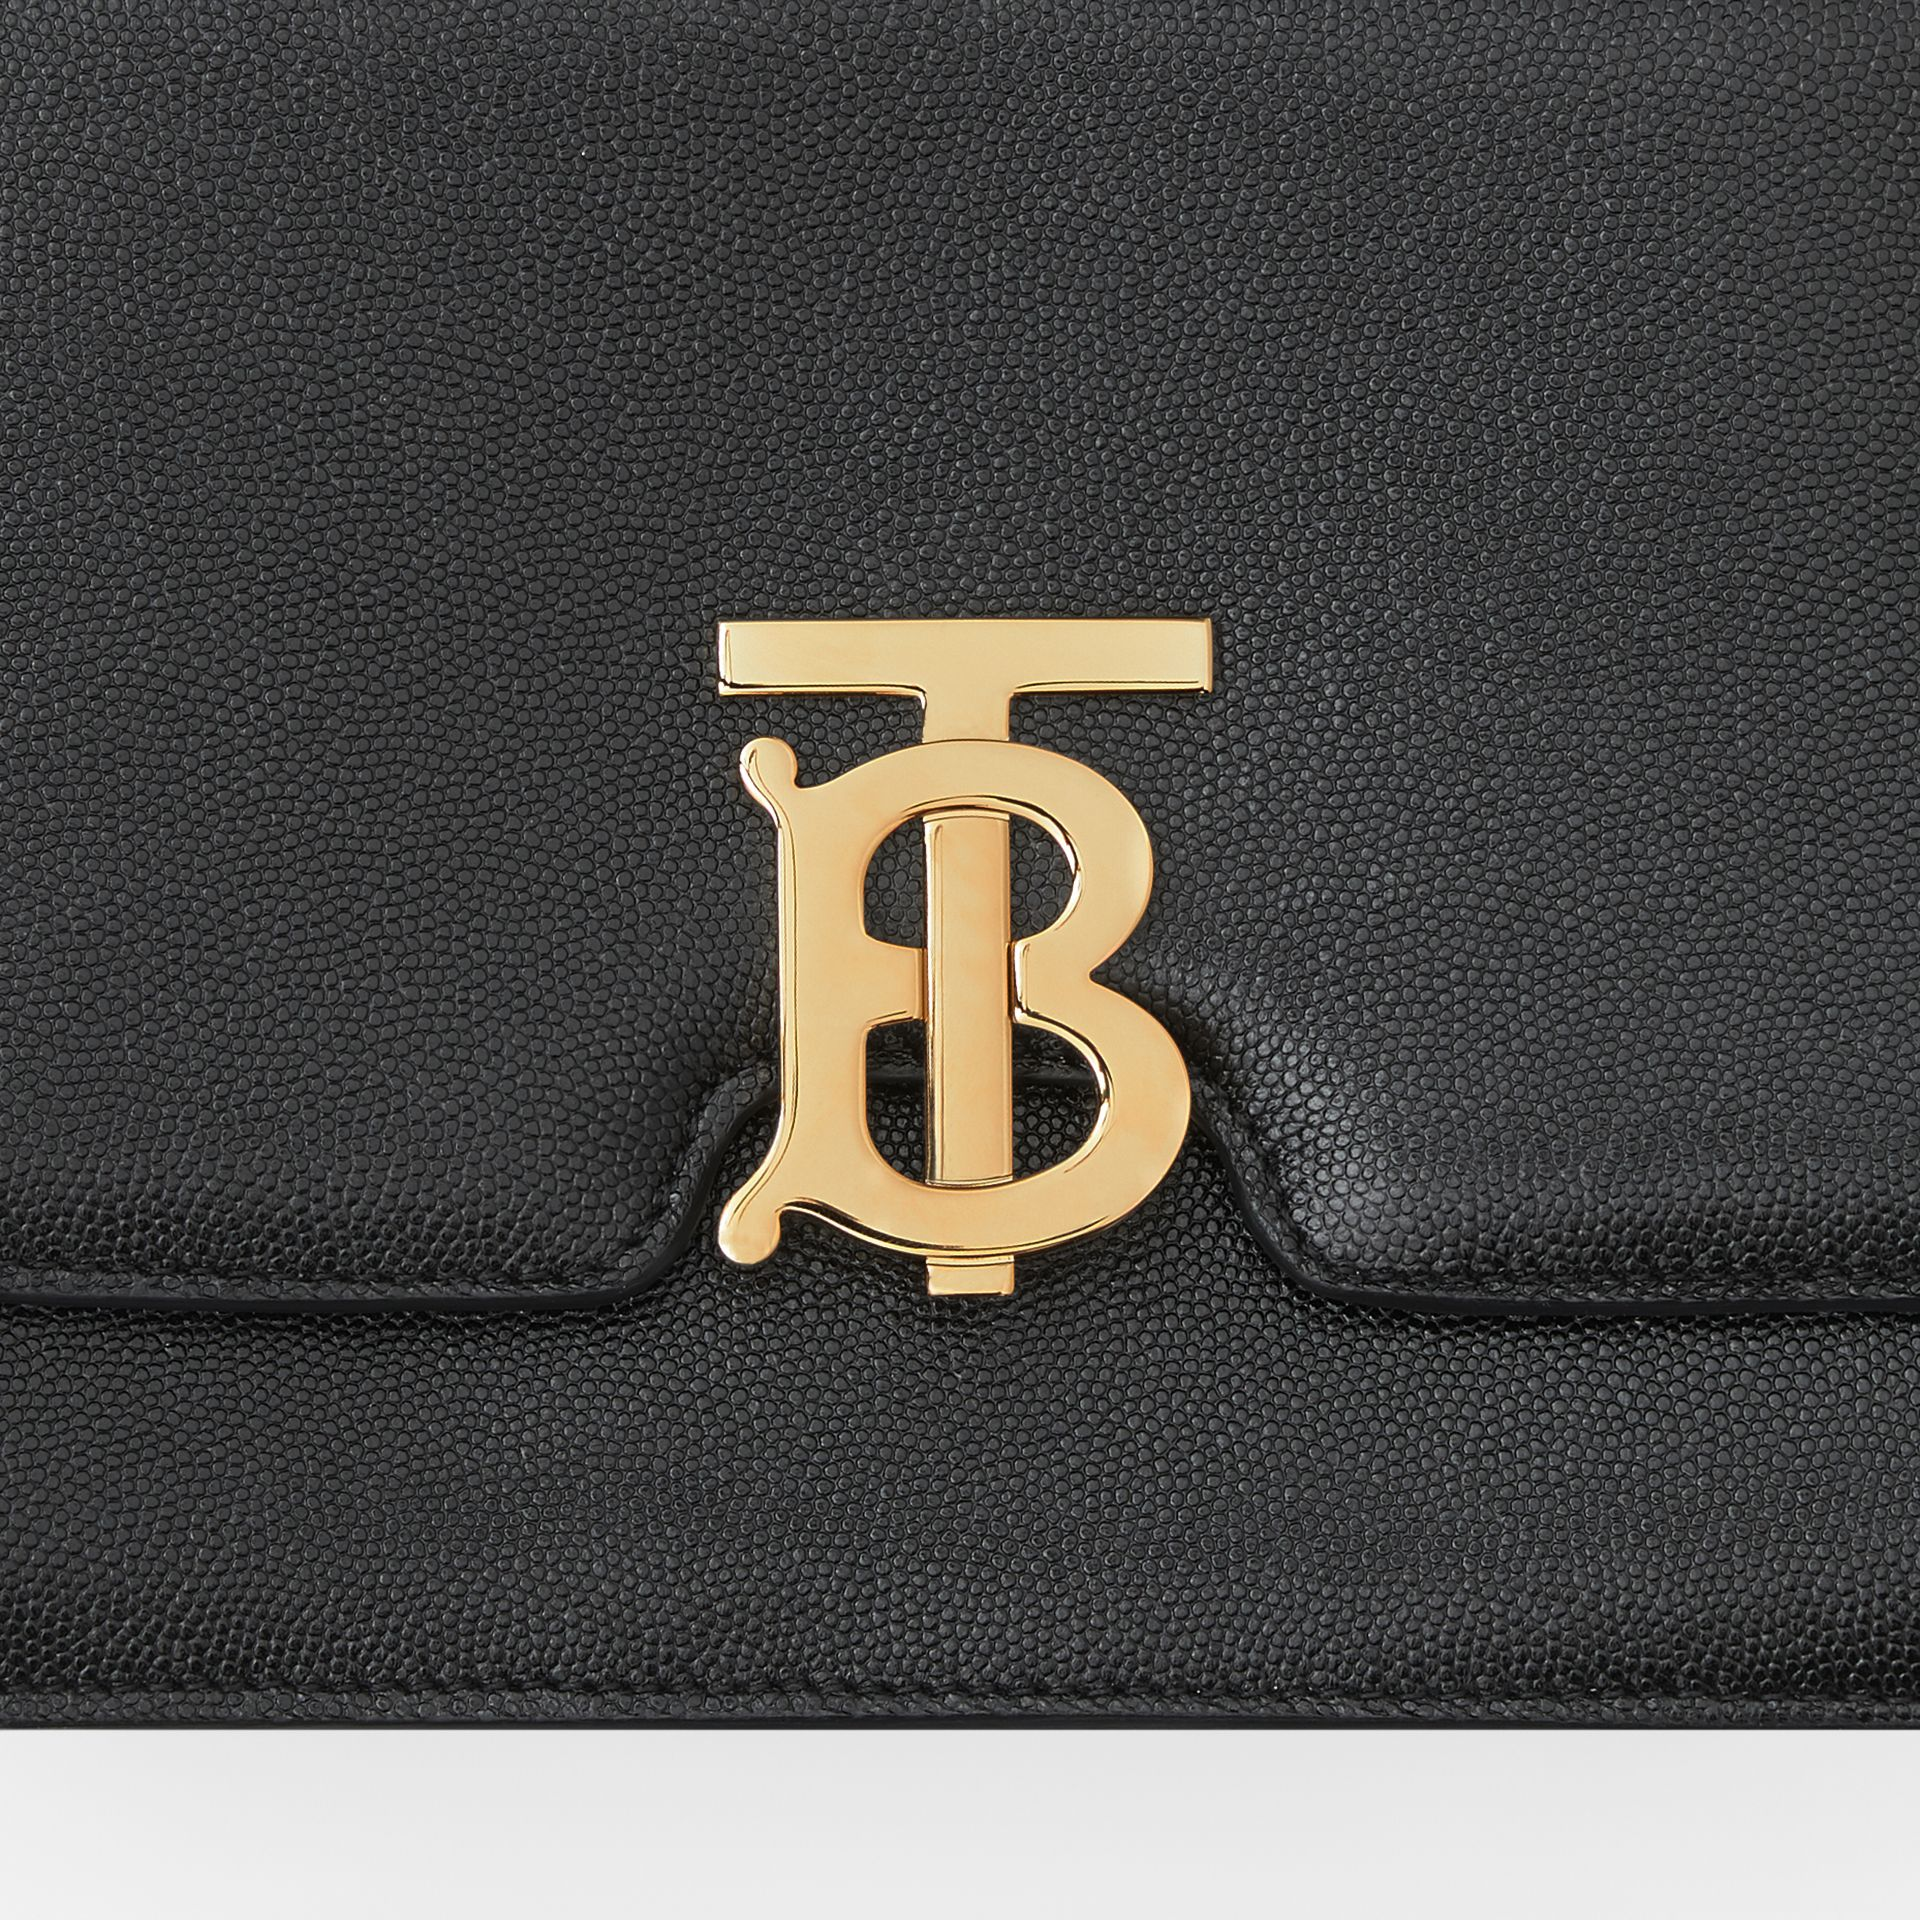 Medium Grainy Leather TB Bag in Black - Women | Burberry Australia - gallery image 1